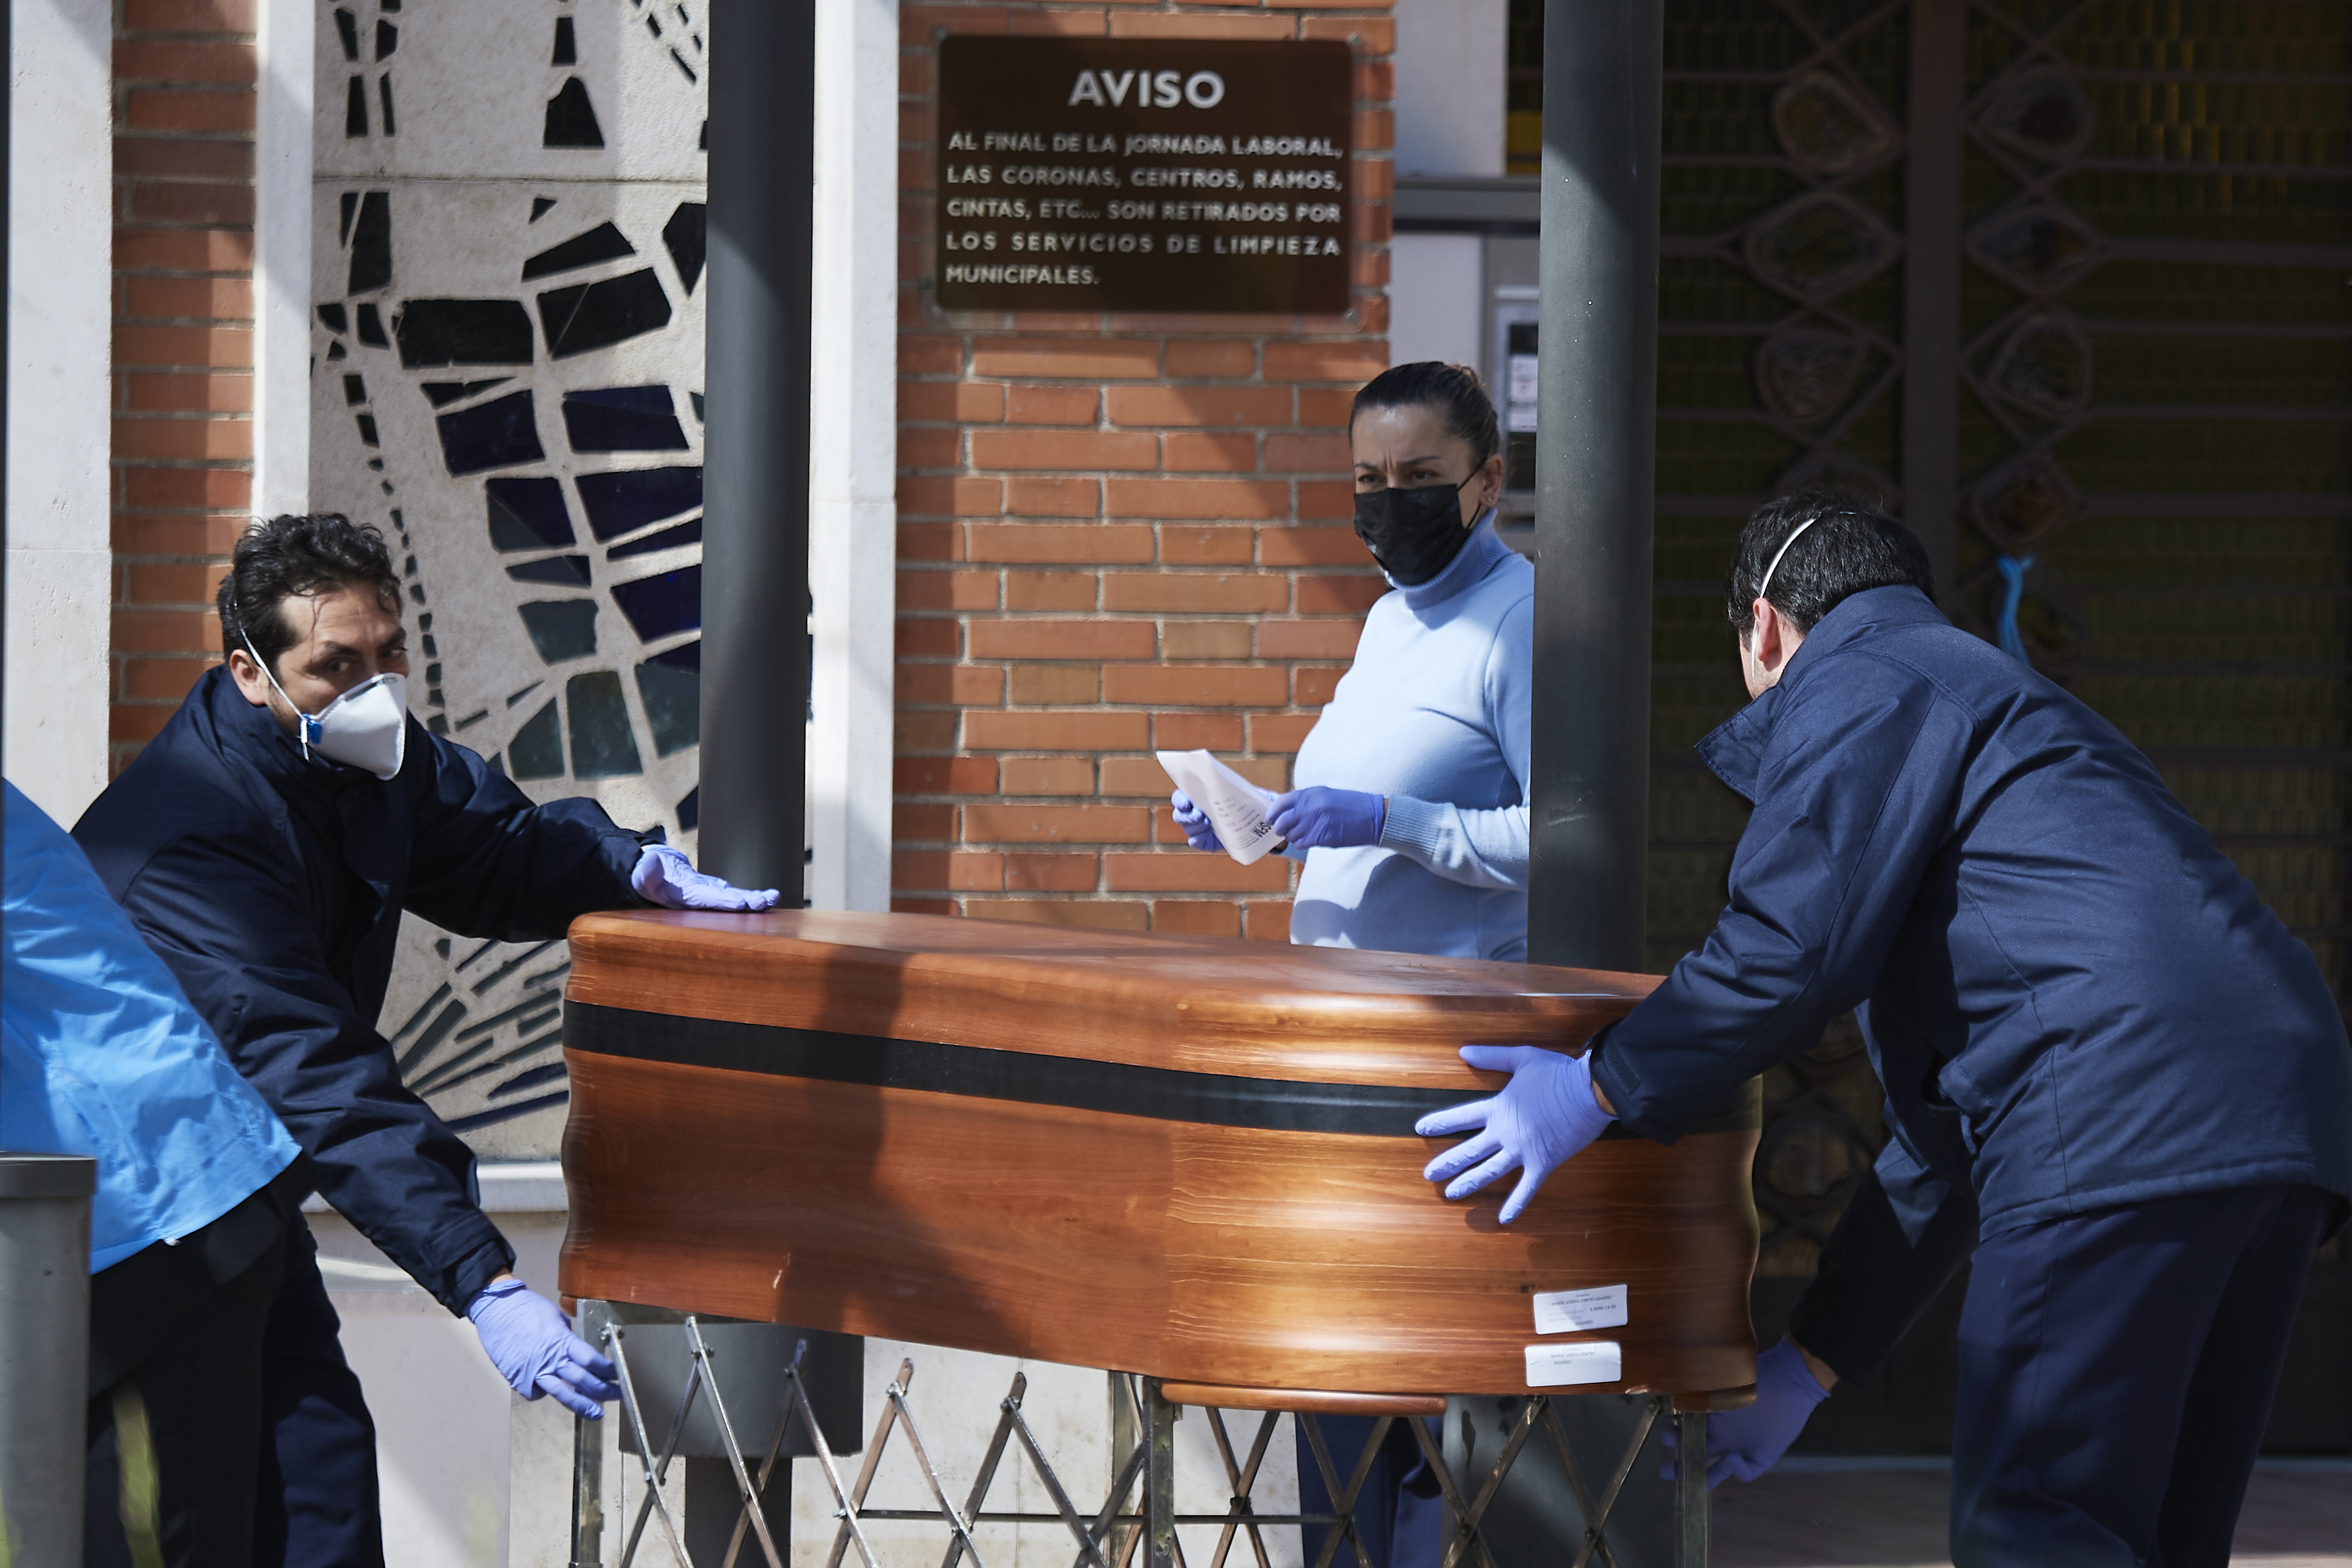 MADRID, SPAIN - MARCH 26: Two workers transport a coffin at La Almudena cemetery on March 26, 2020 in Madrid, Spain. Spain plans to continue its quarantine measures at least through April 11. The Coronavirus (COVID-19) pandemic has spread to many countries across the world, claiming over 20,000 lives and infecting hundreds of thousands more. (Photo by Carlos Alvarez/Getty Images)